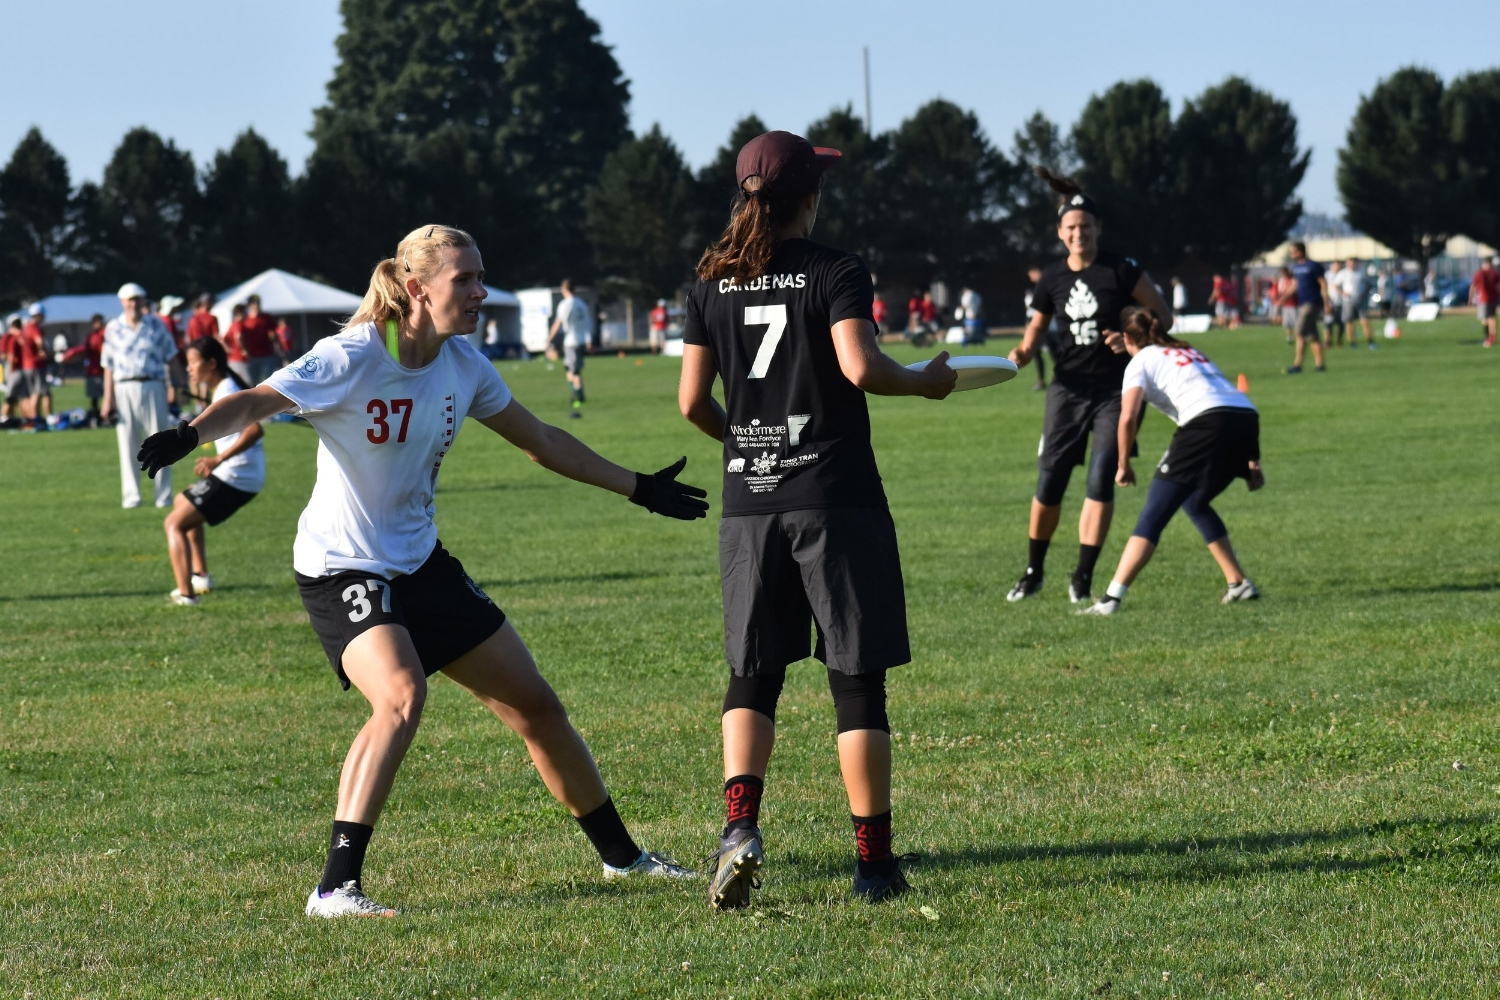 Calise Cardenas of  Seattle Riot  matches up against  Washington DC Scandal 's Sandy Jorgensen in pool play at USAU Pro Championships. (Laurel Oldershaw)